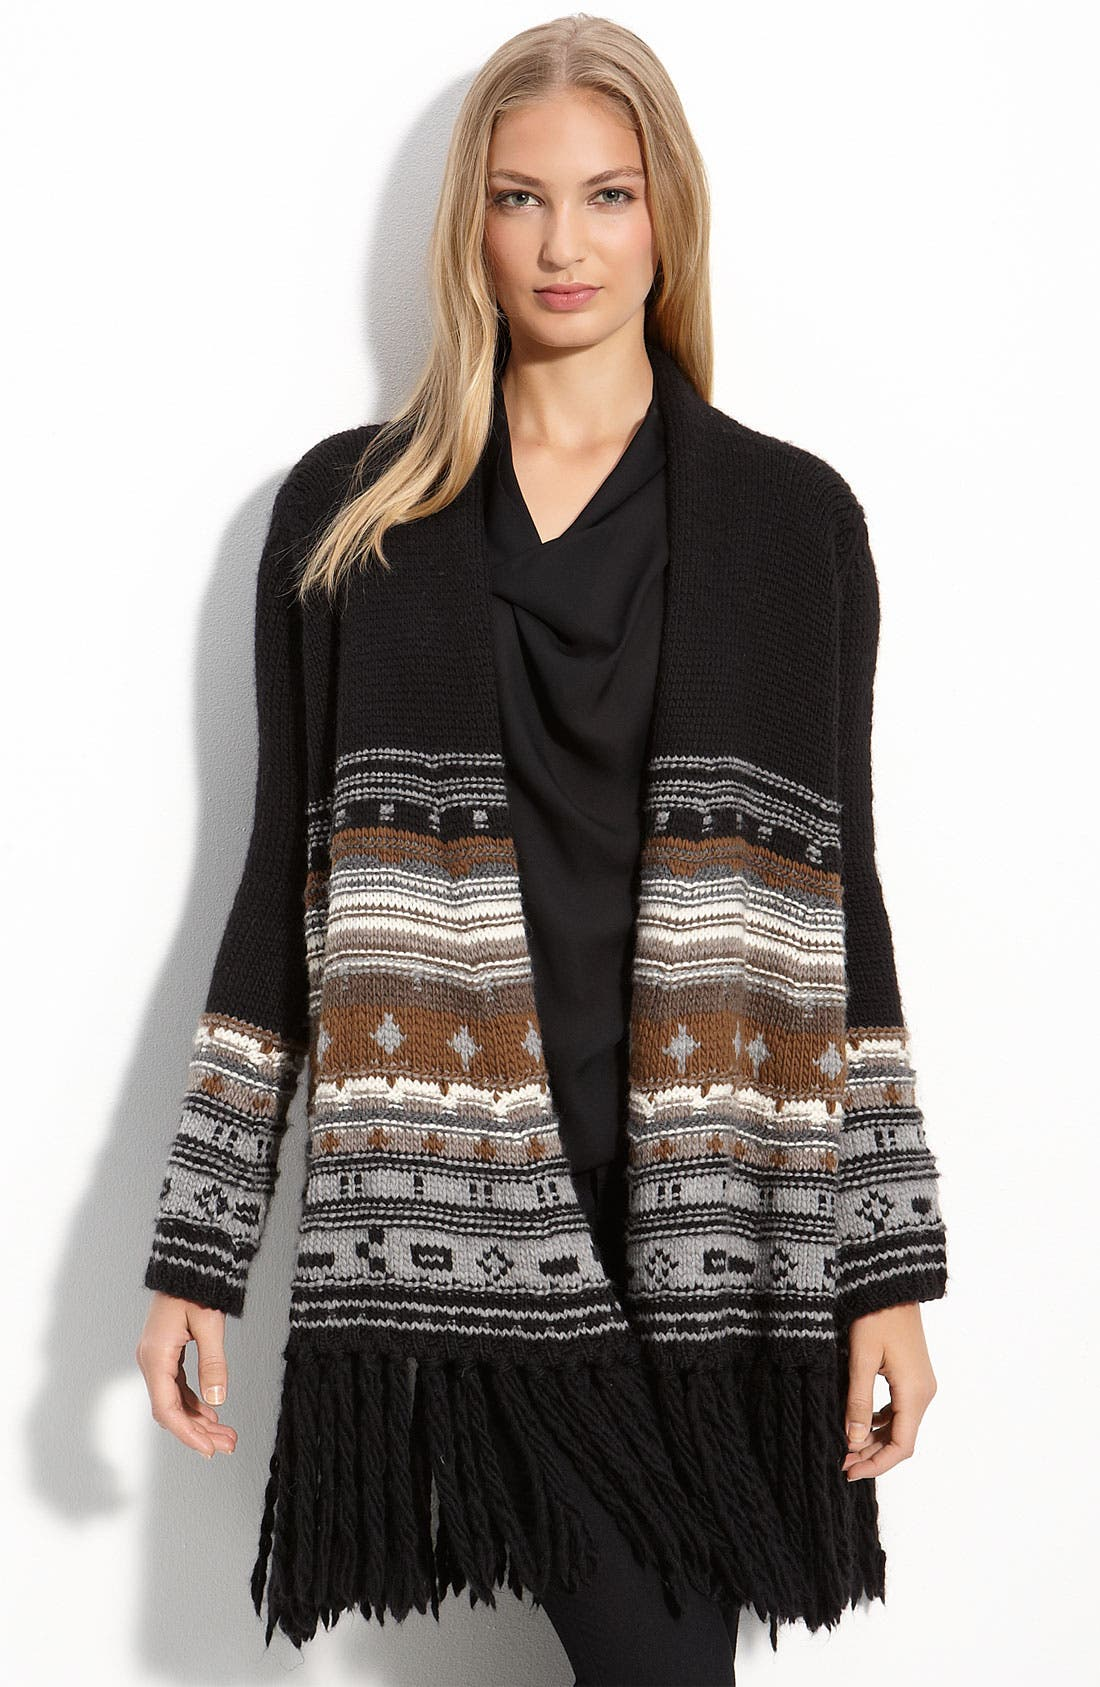 Alternate Image 1 Selected - Haute Hippie Fringed Jacquard Cardigan